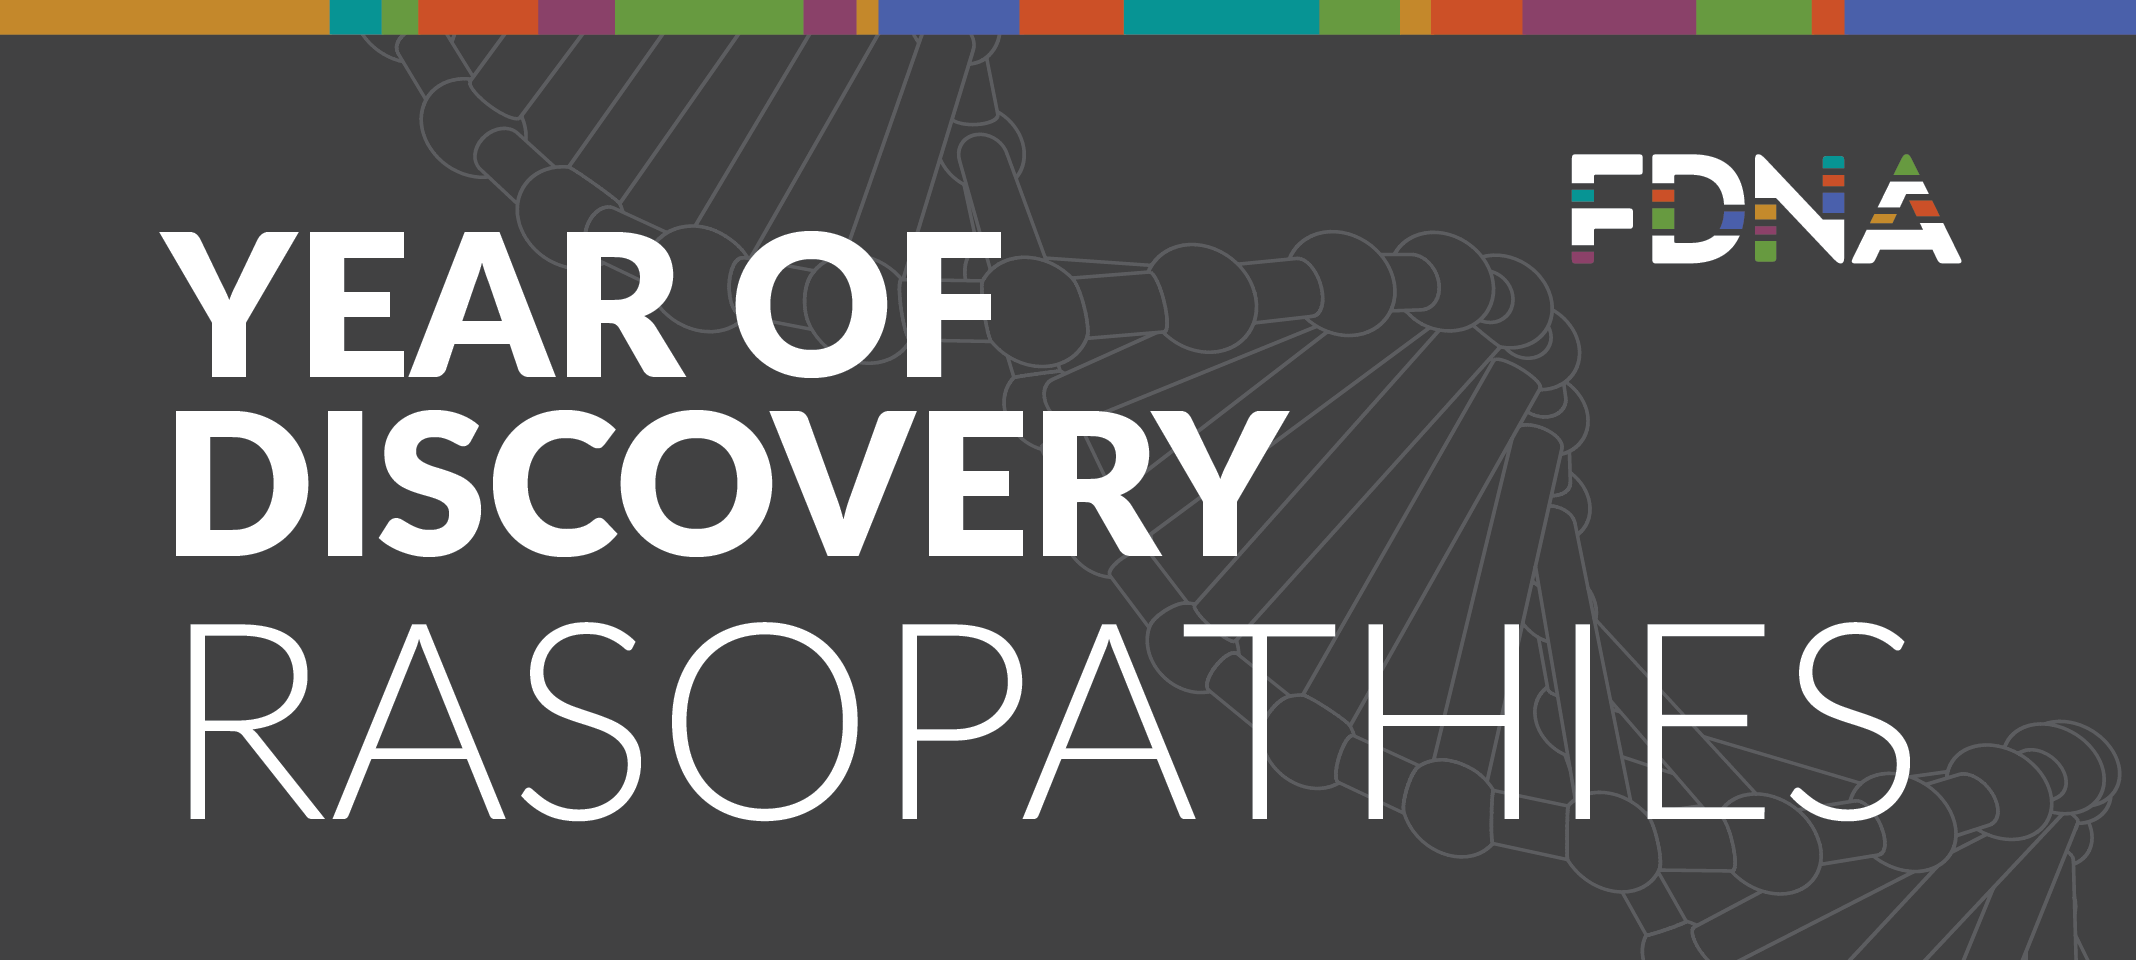 Fdna partners with blueprint genetics to spotlight rasopathies fdnas year of discovery initiative will spotlight a different genetic syndrome group each month as part of their mission to accelerate advancements and malvernweather Images